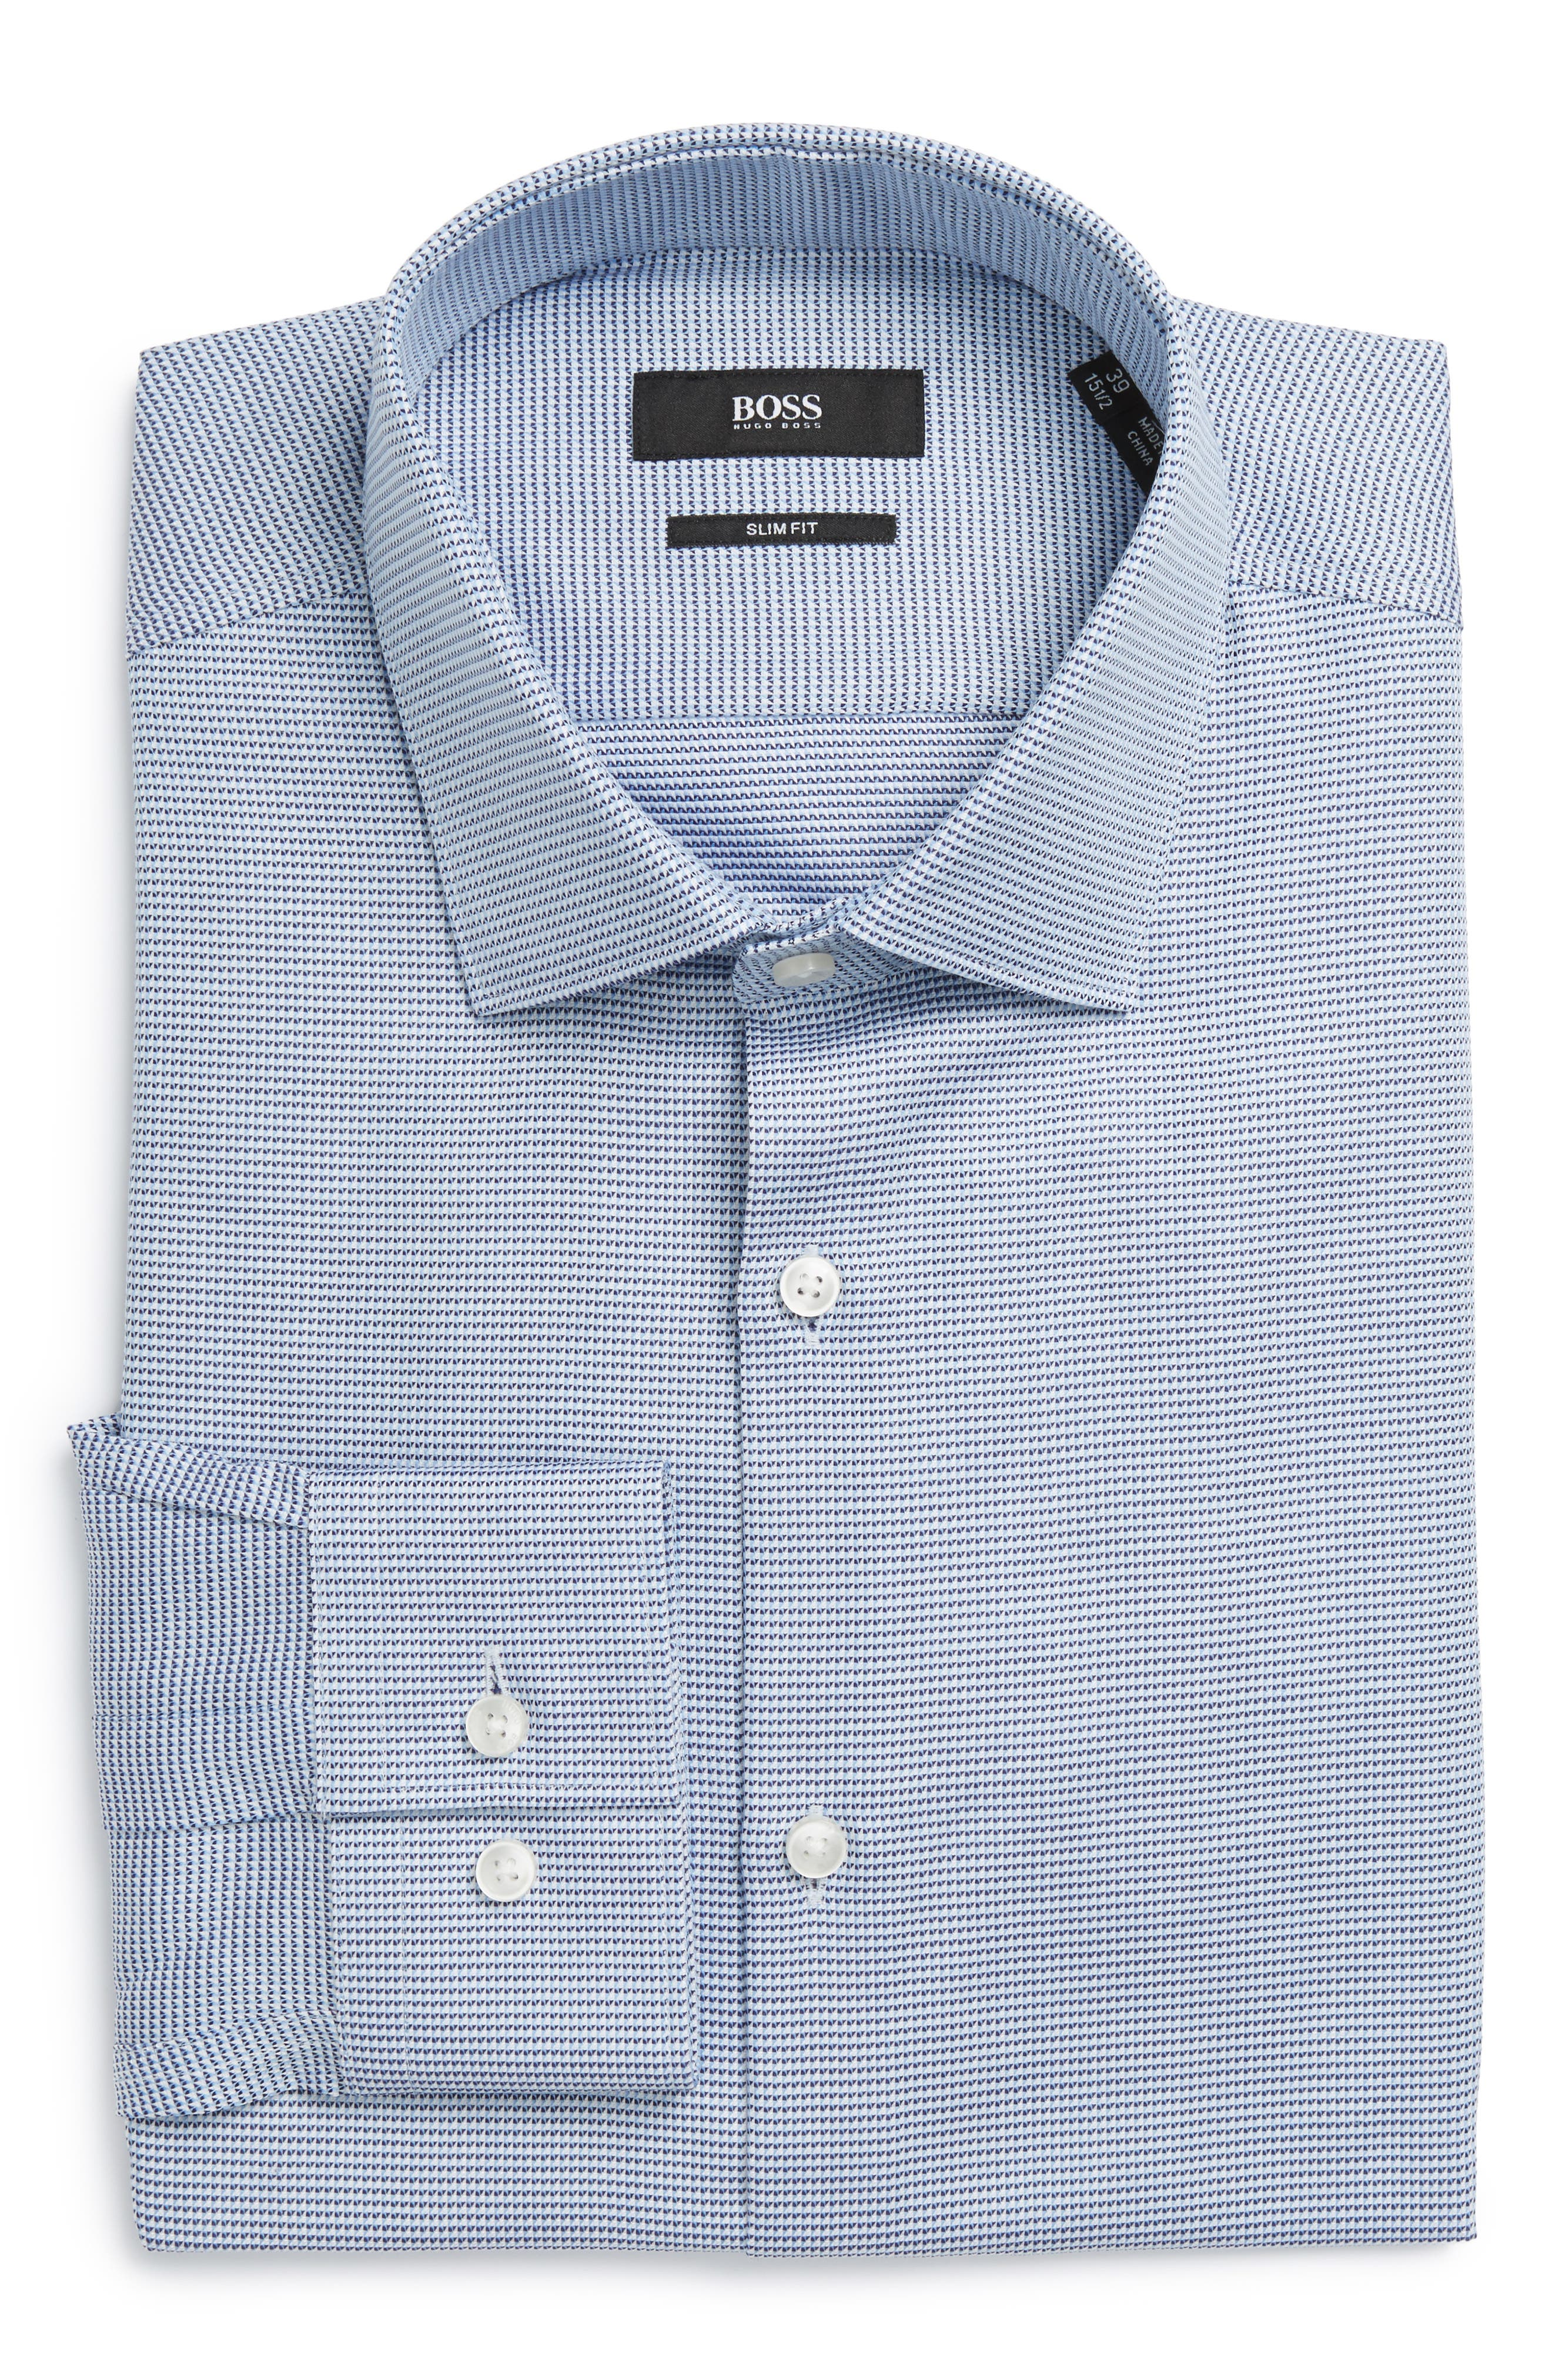 BOSS Ismo Slim Fit Geometric Dress Shirt